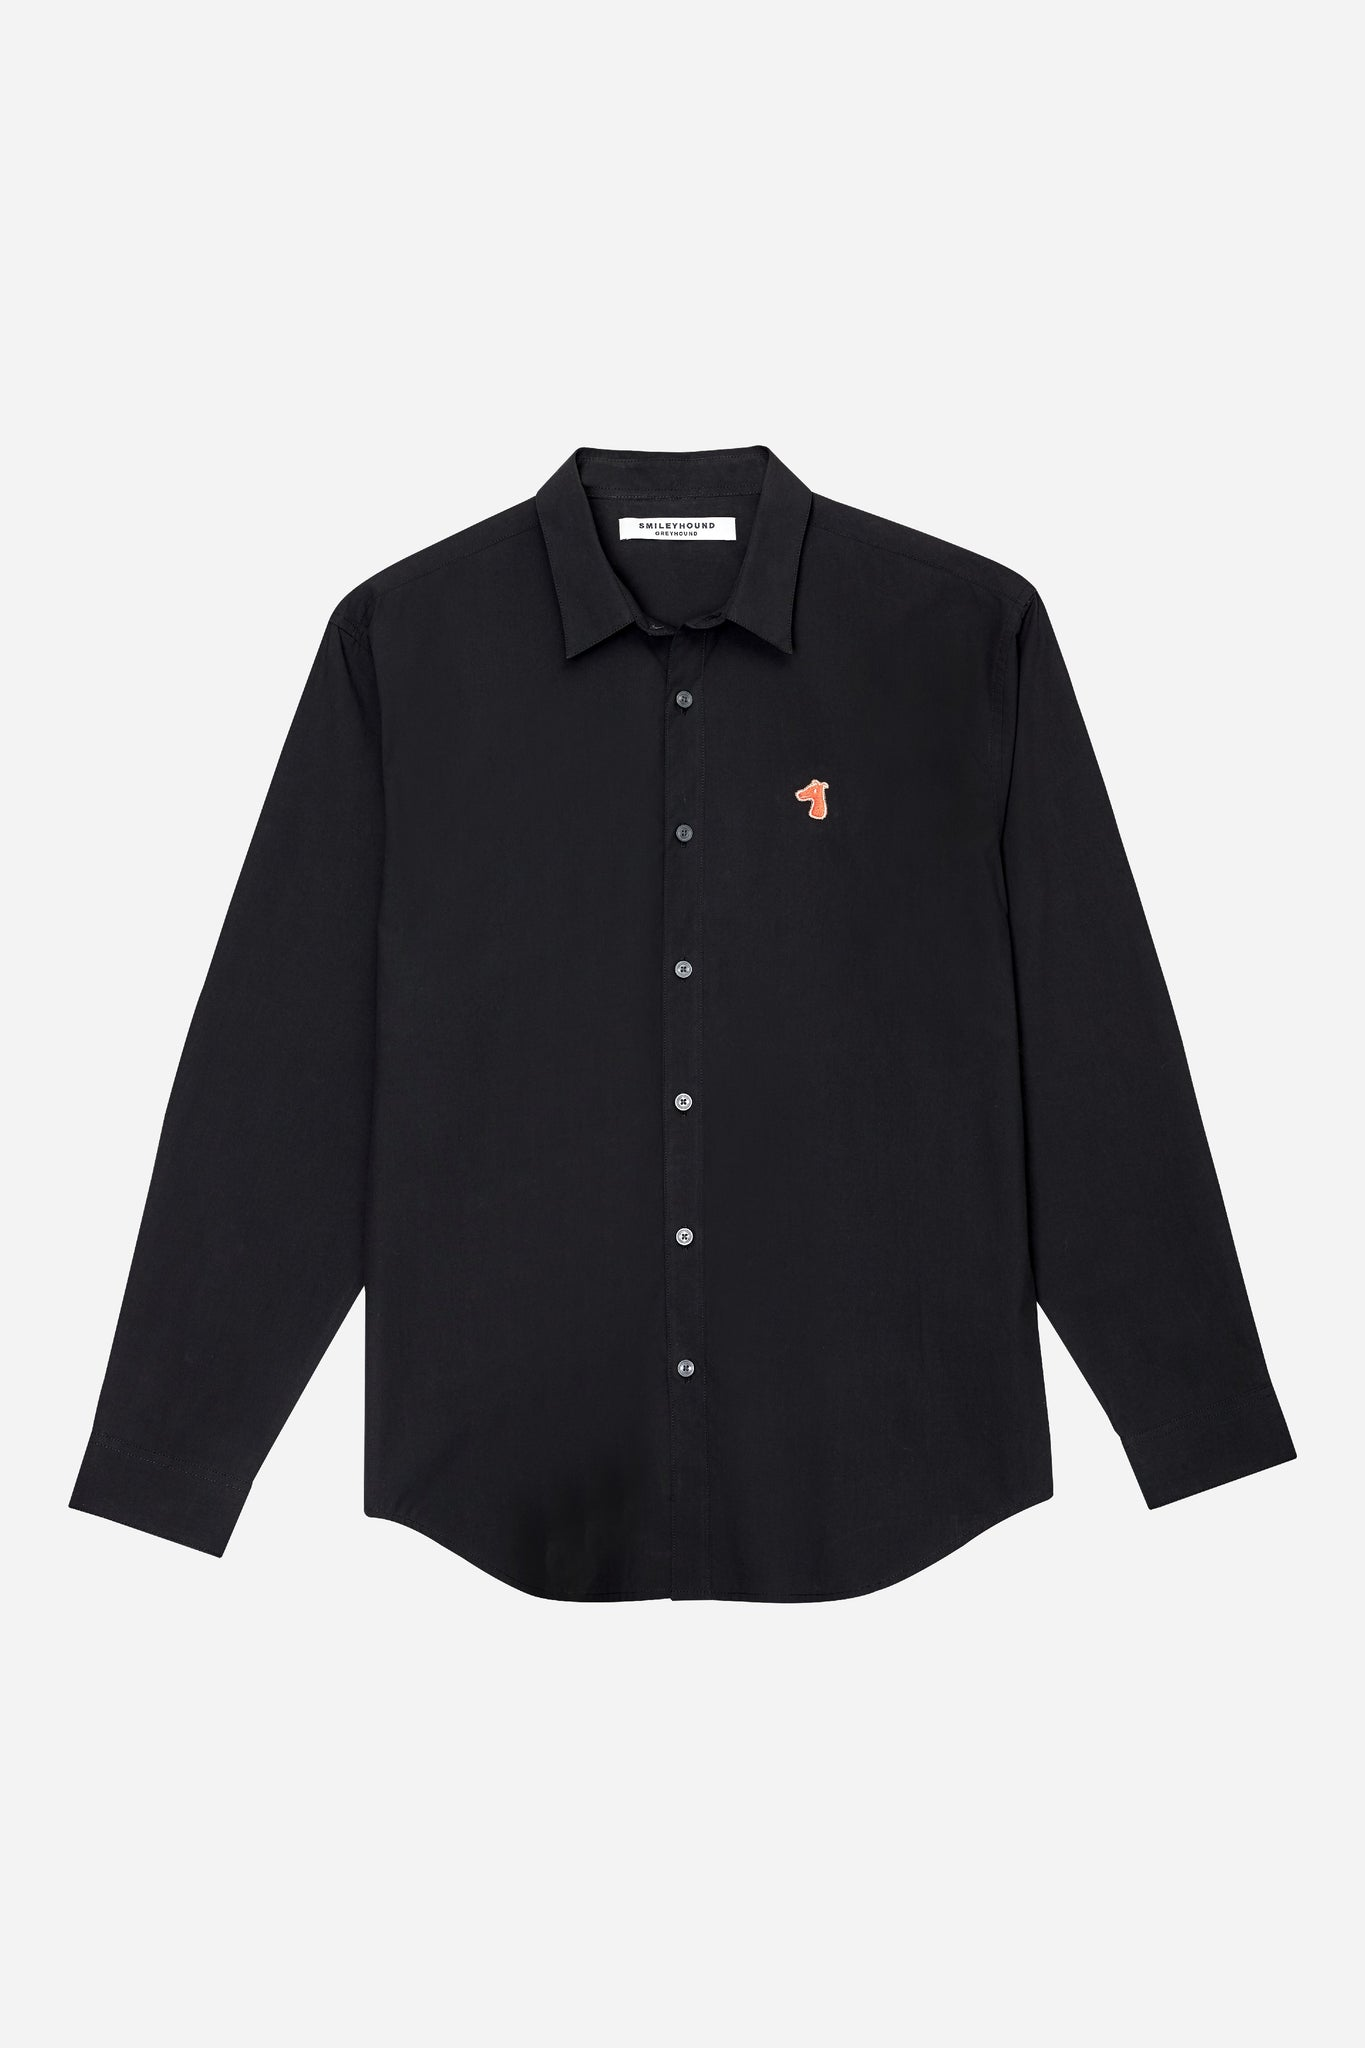 Load image into Gallery viewer, POPLIN REGULAR SHIRT WITH LOGO EMBROIDED (S20MD01183BK1A)